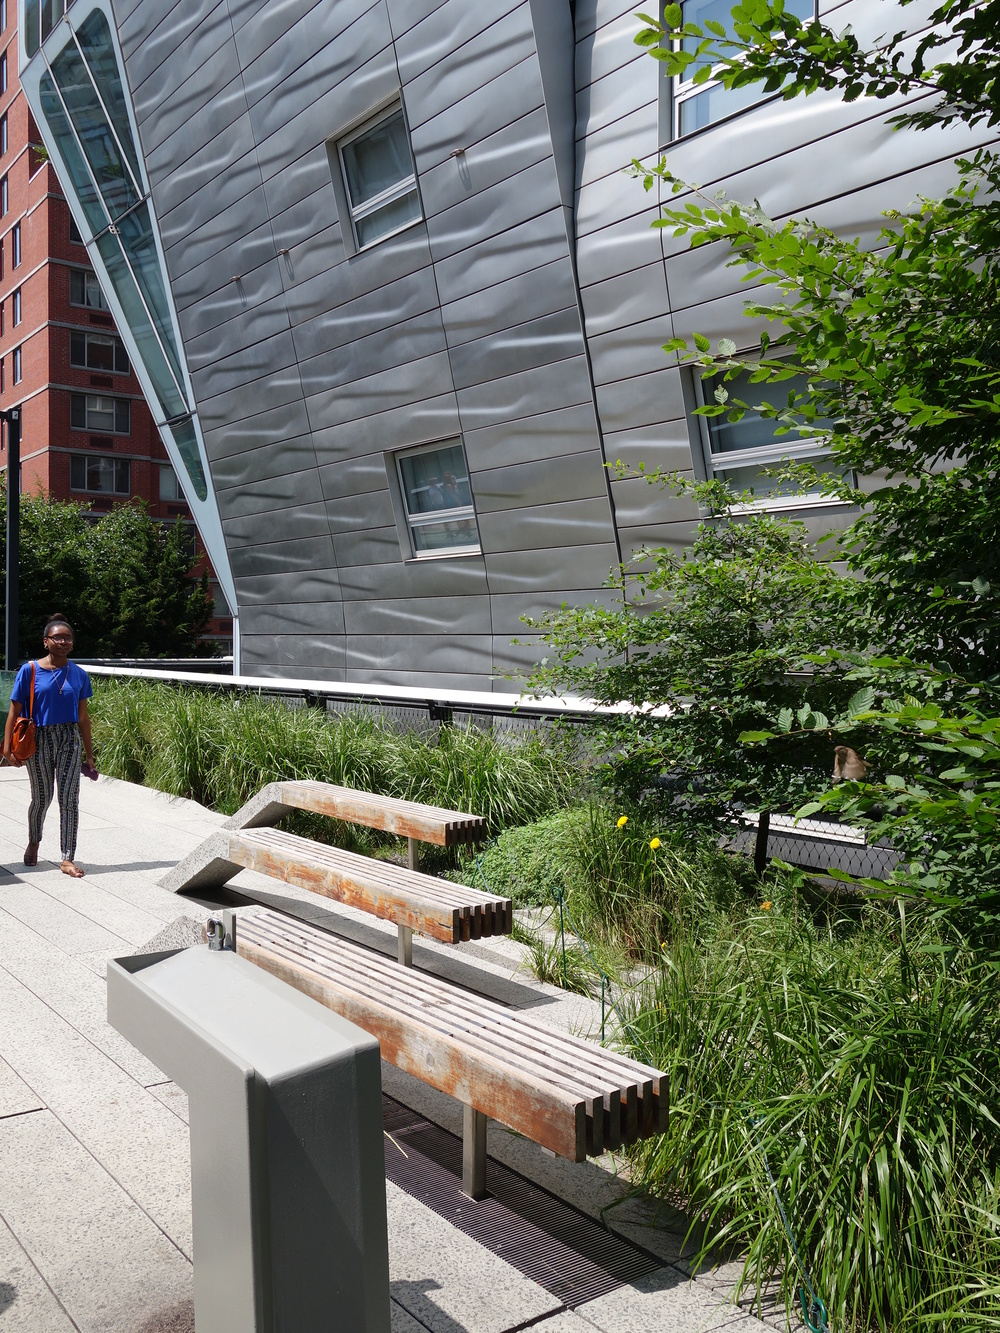 'Peel-up' seating and drinking fountains are a feature of The High Line.